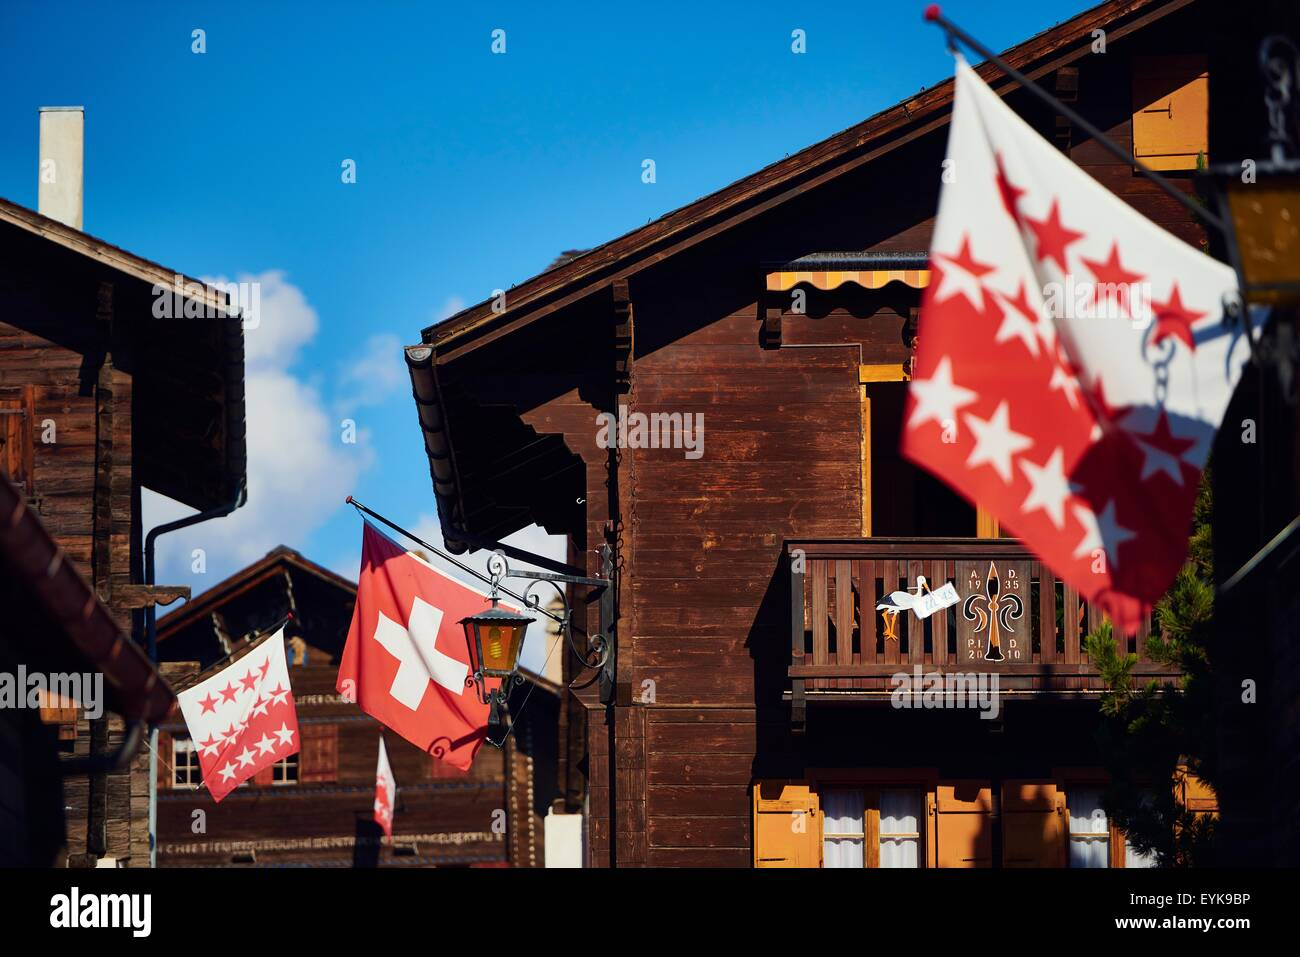 Flags on chalet buildings, Valais, Switzerland - Stock Image